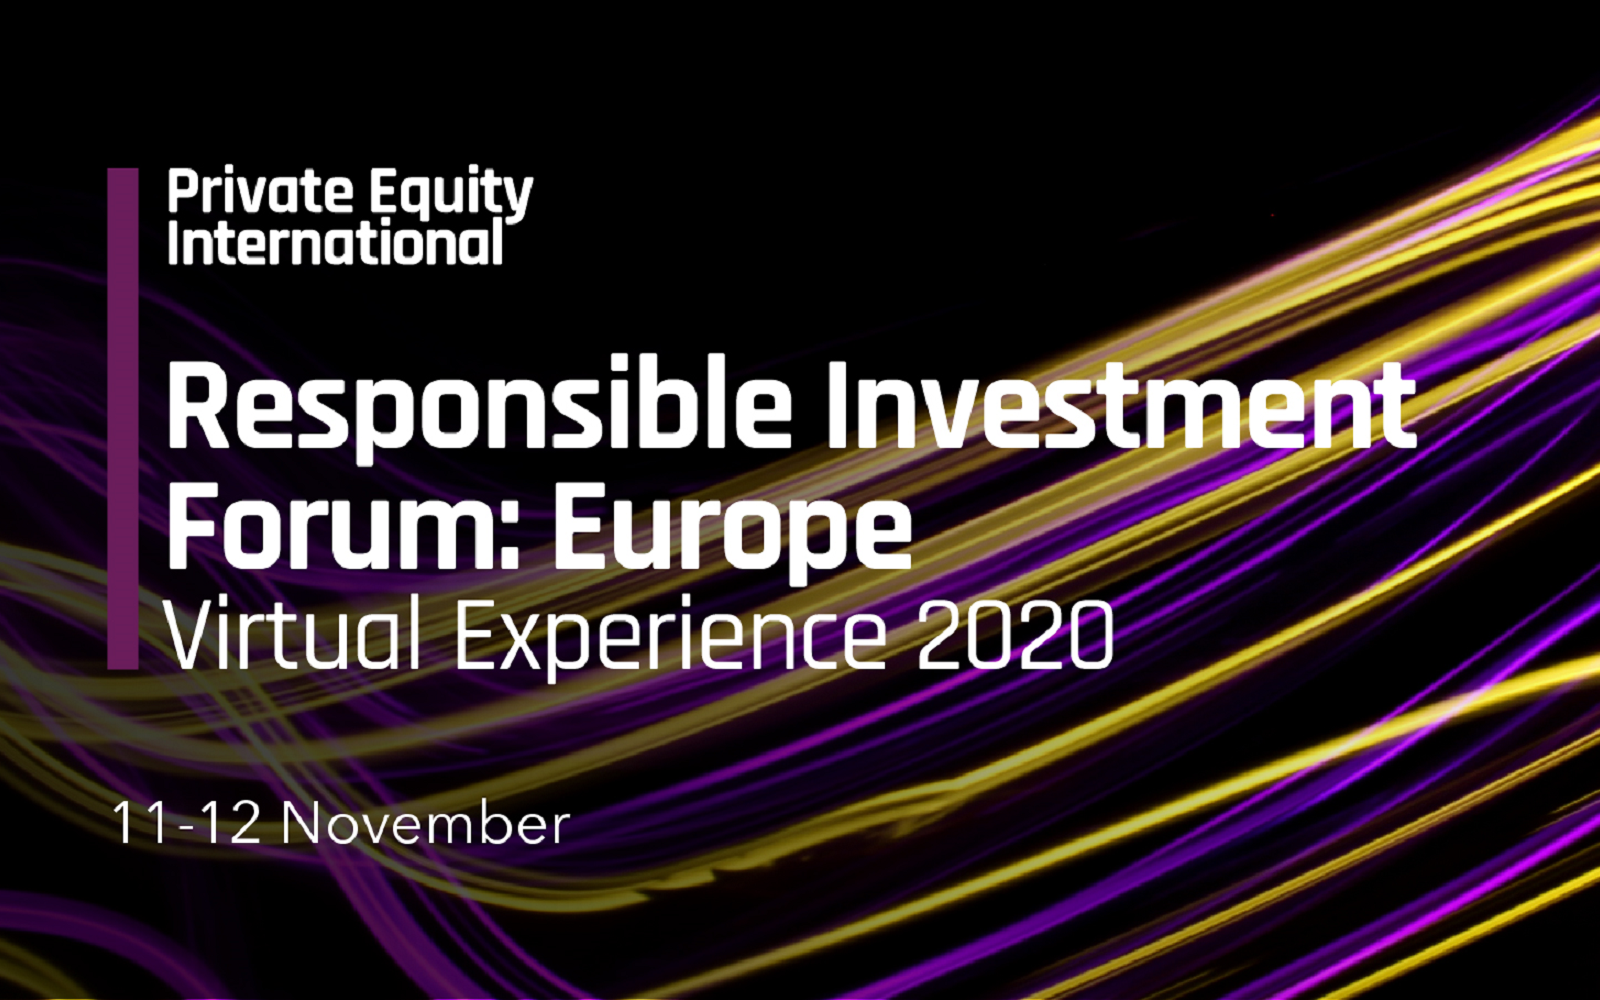 Responsible Investment Forum: Europe 2020